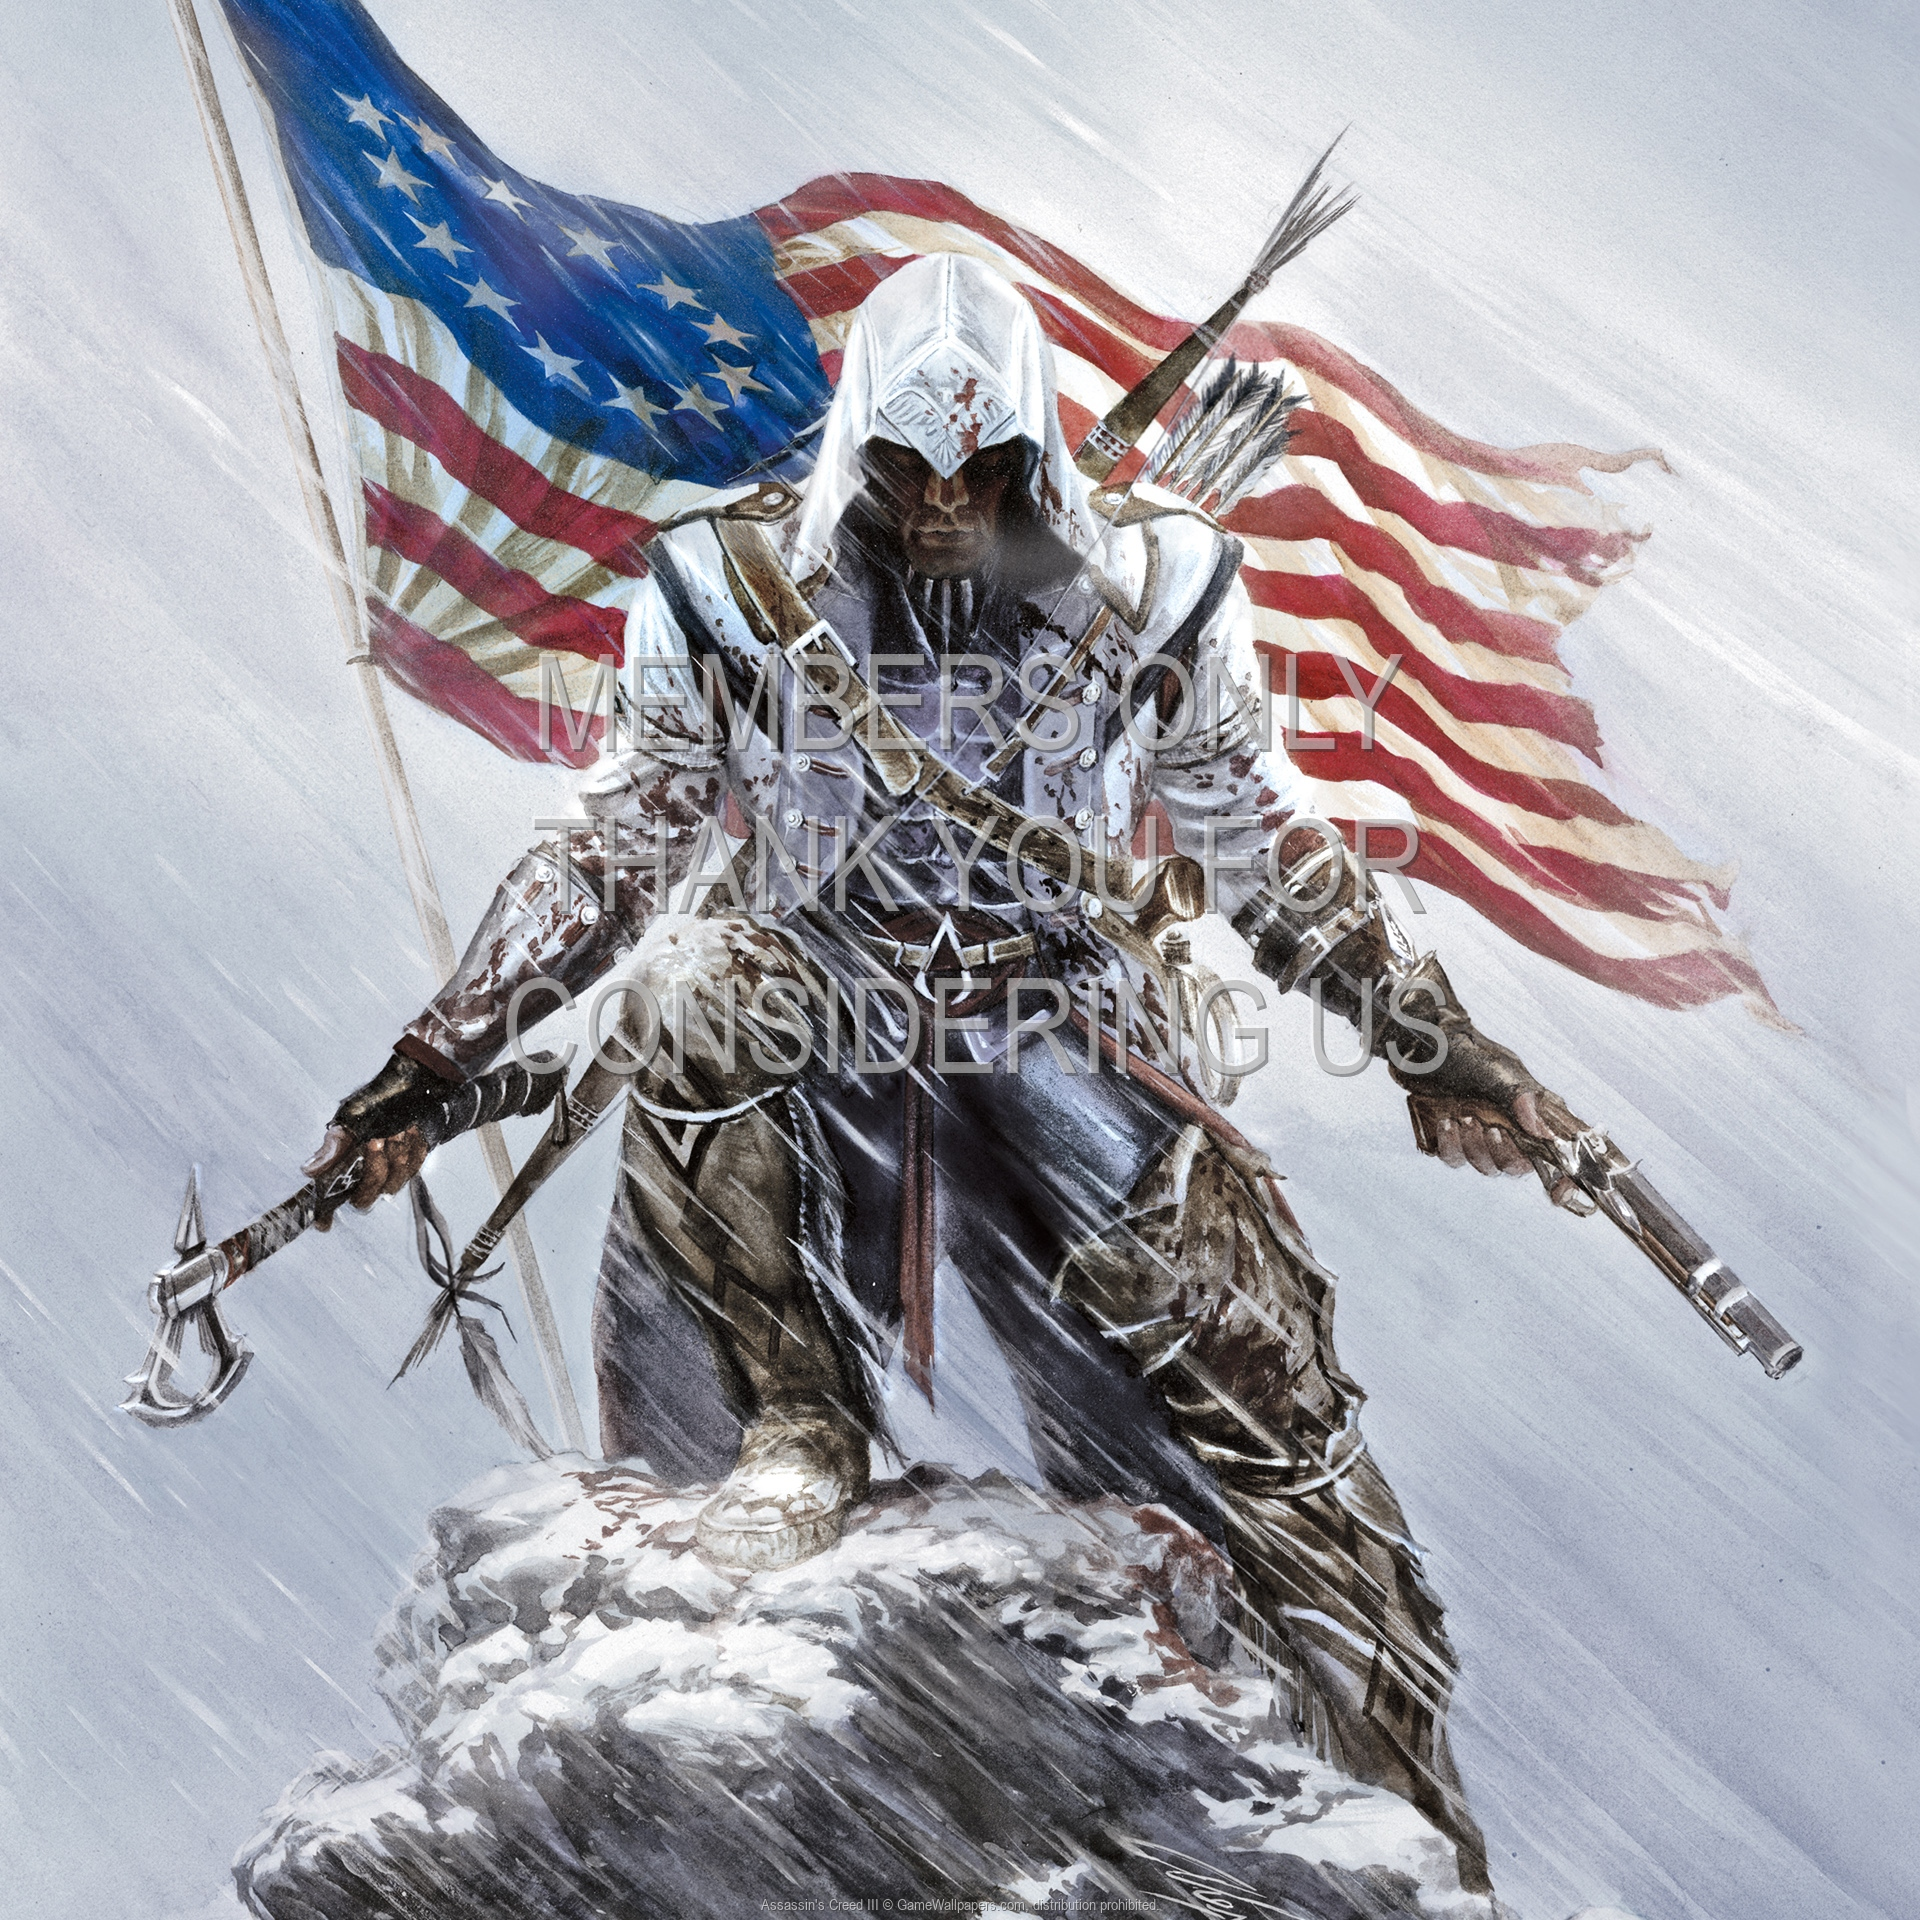 Assassin's Creed III 1920x1080 Mobile wallpaper or background 26